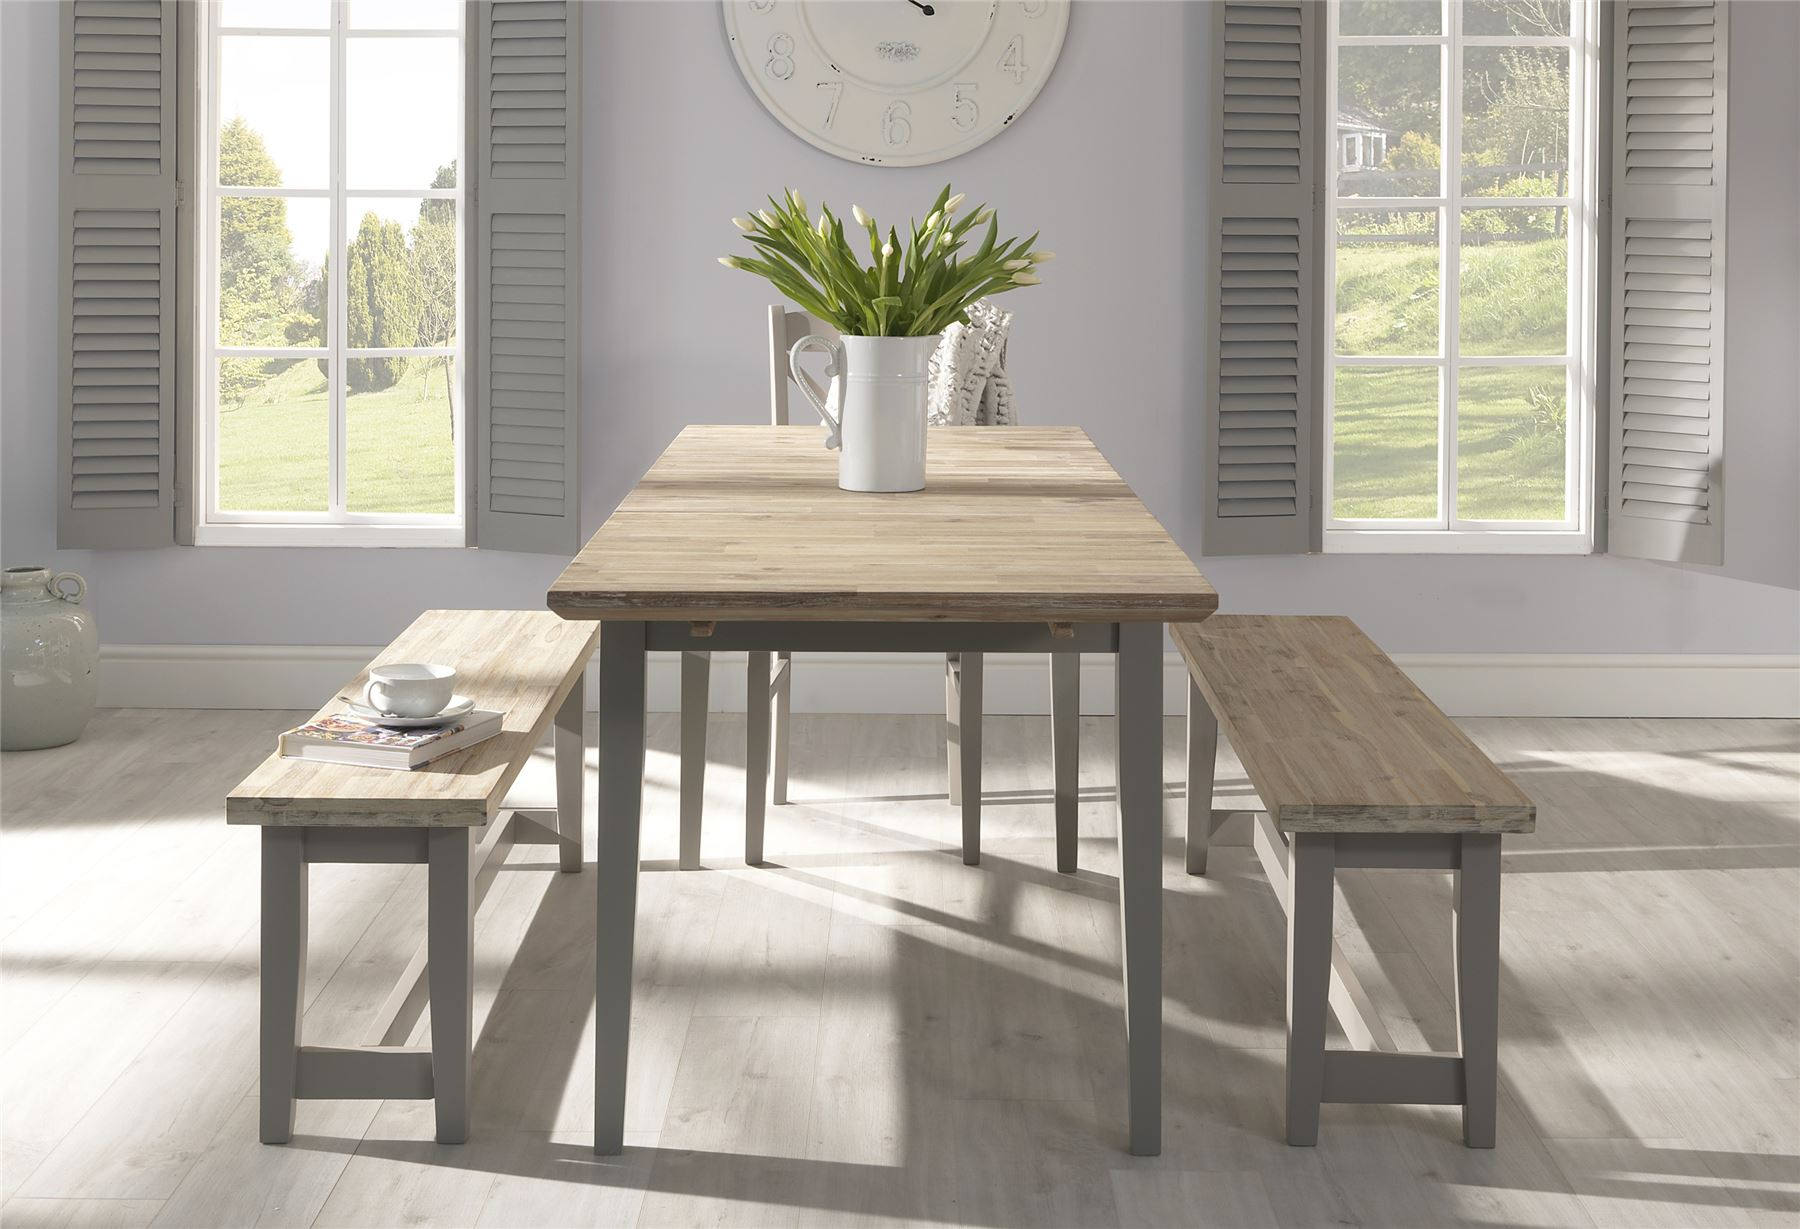 Florence Dining Bench 140cm Long Quality Wooden Bench In